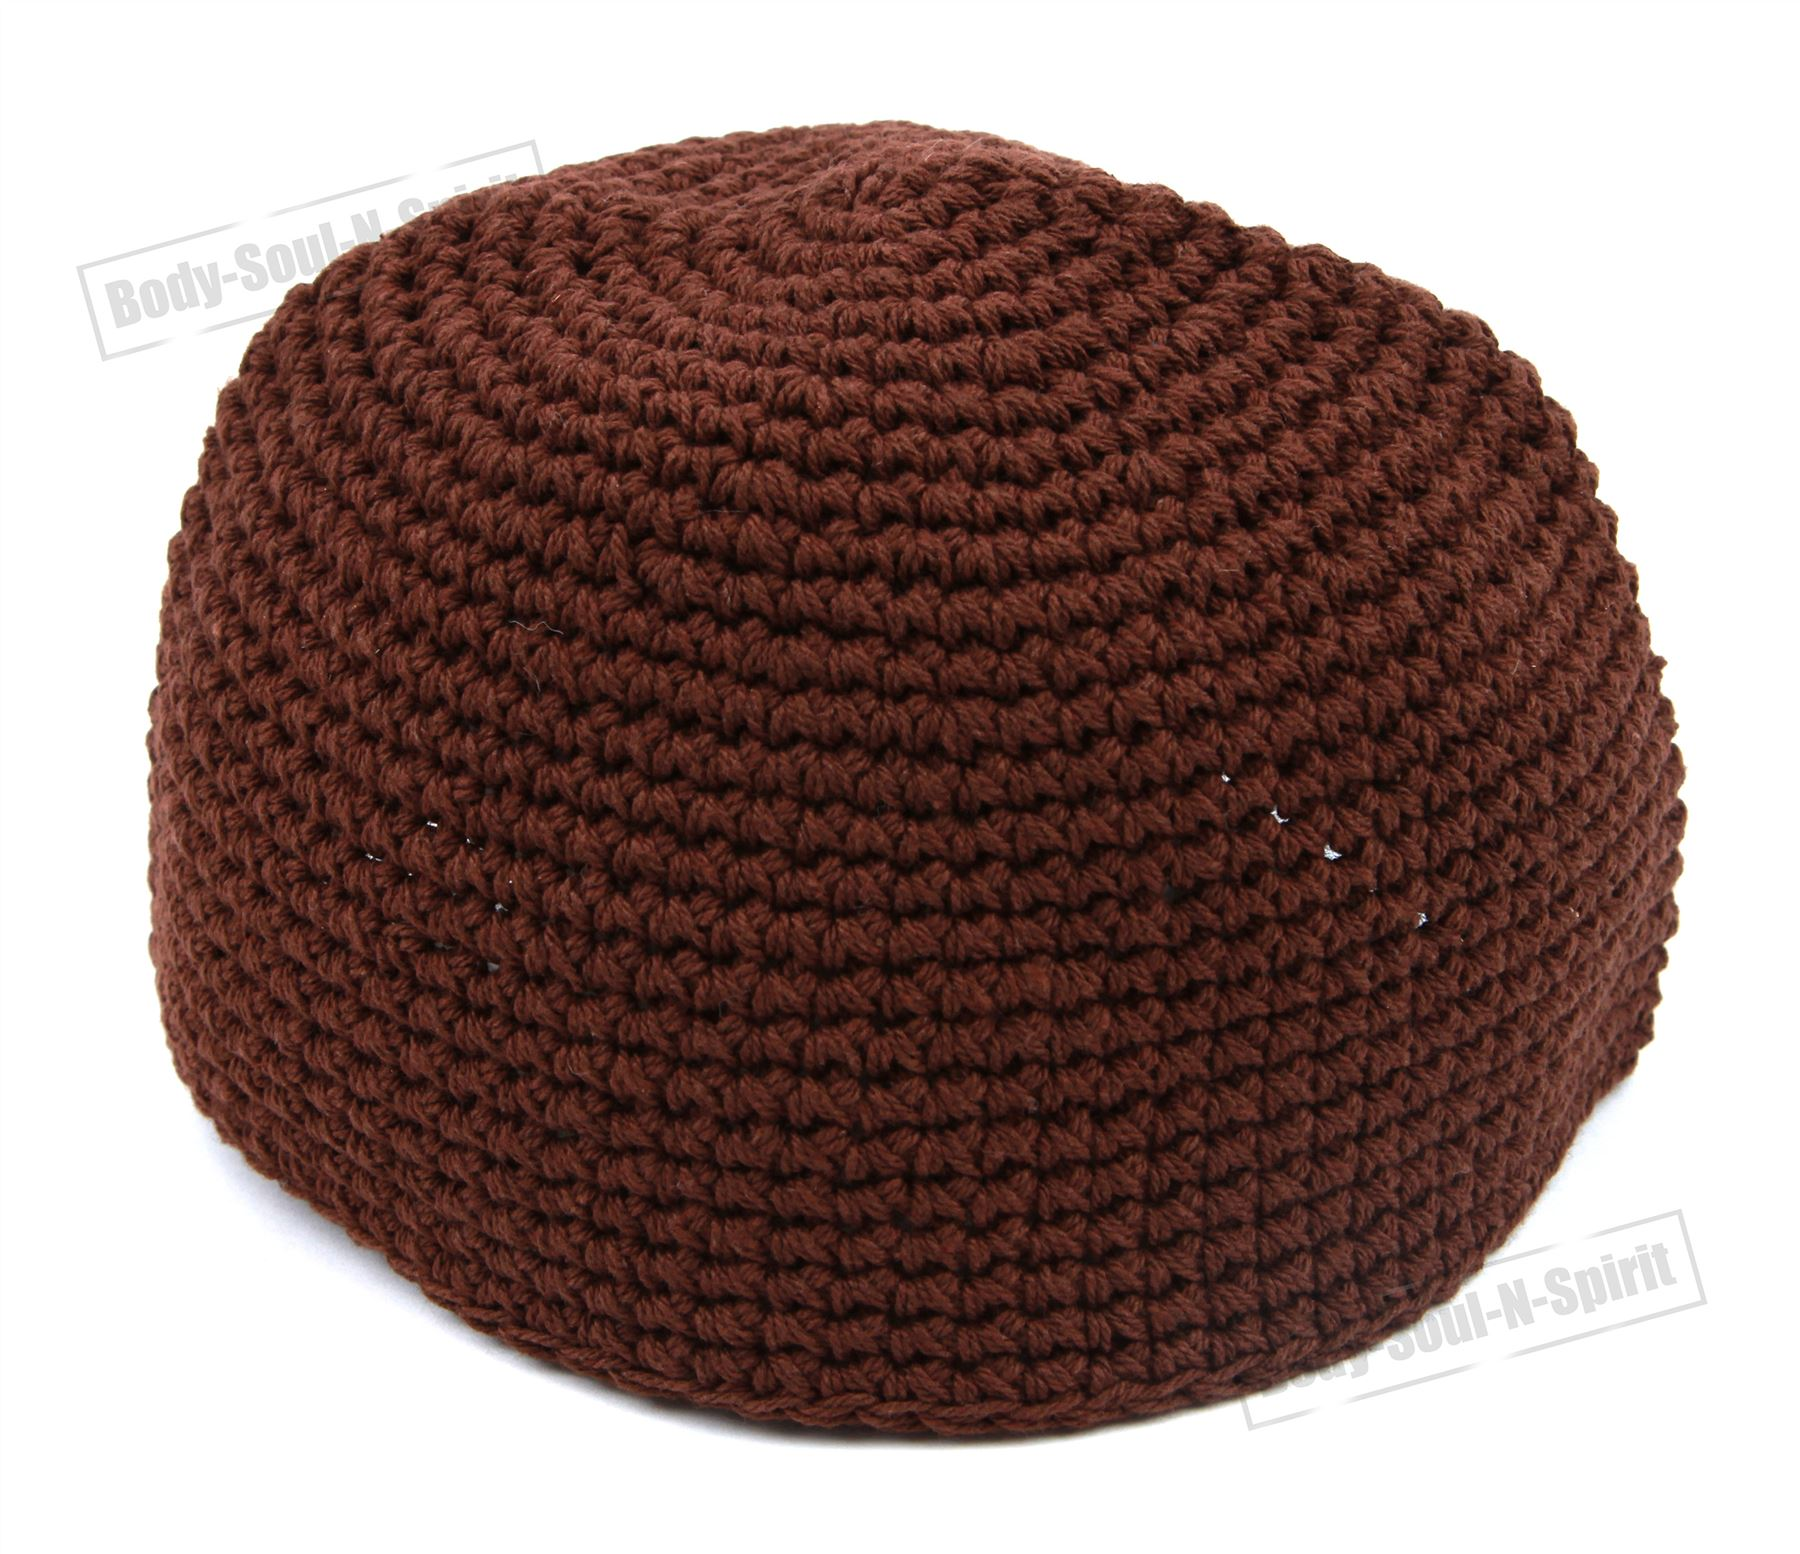 Brown Knitted Kippah Yarmulke Tribal Jewish Hat covering Holy Scared ...